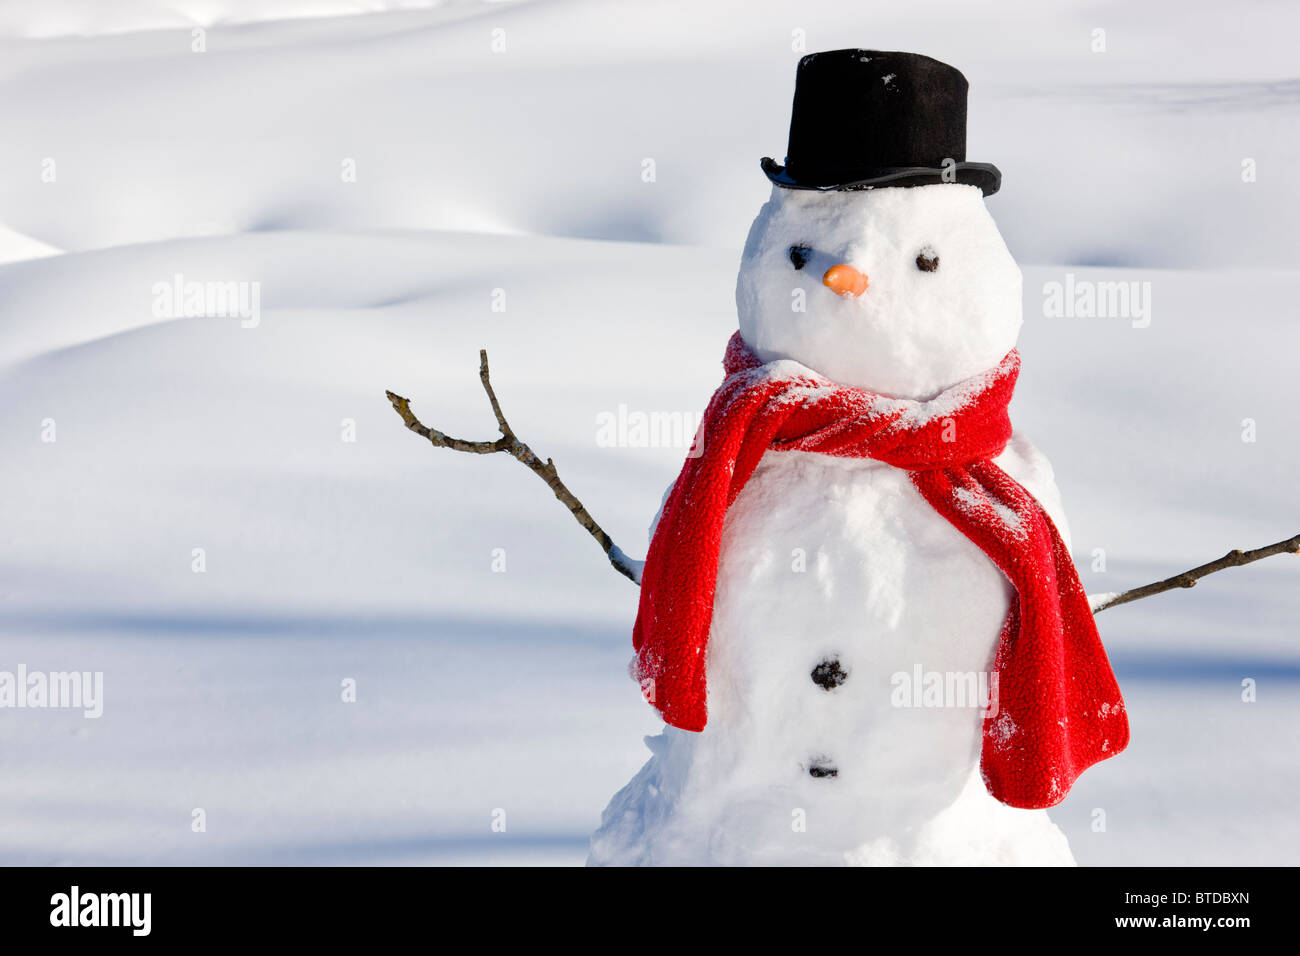 Snowman with a red scarf and black top hat sitting next to a snow covered river bed, Southcentral Alaska, Winter Stock Photo